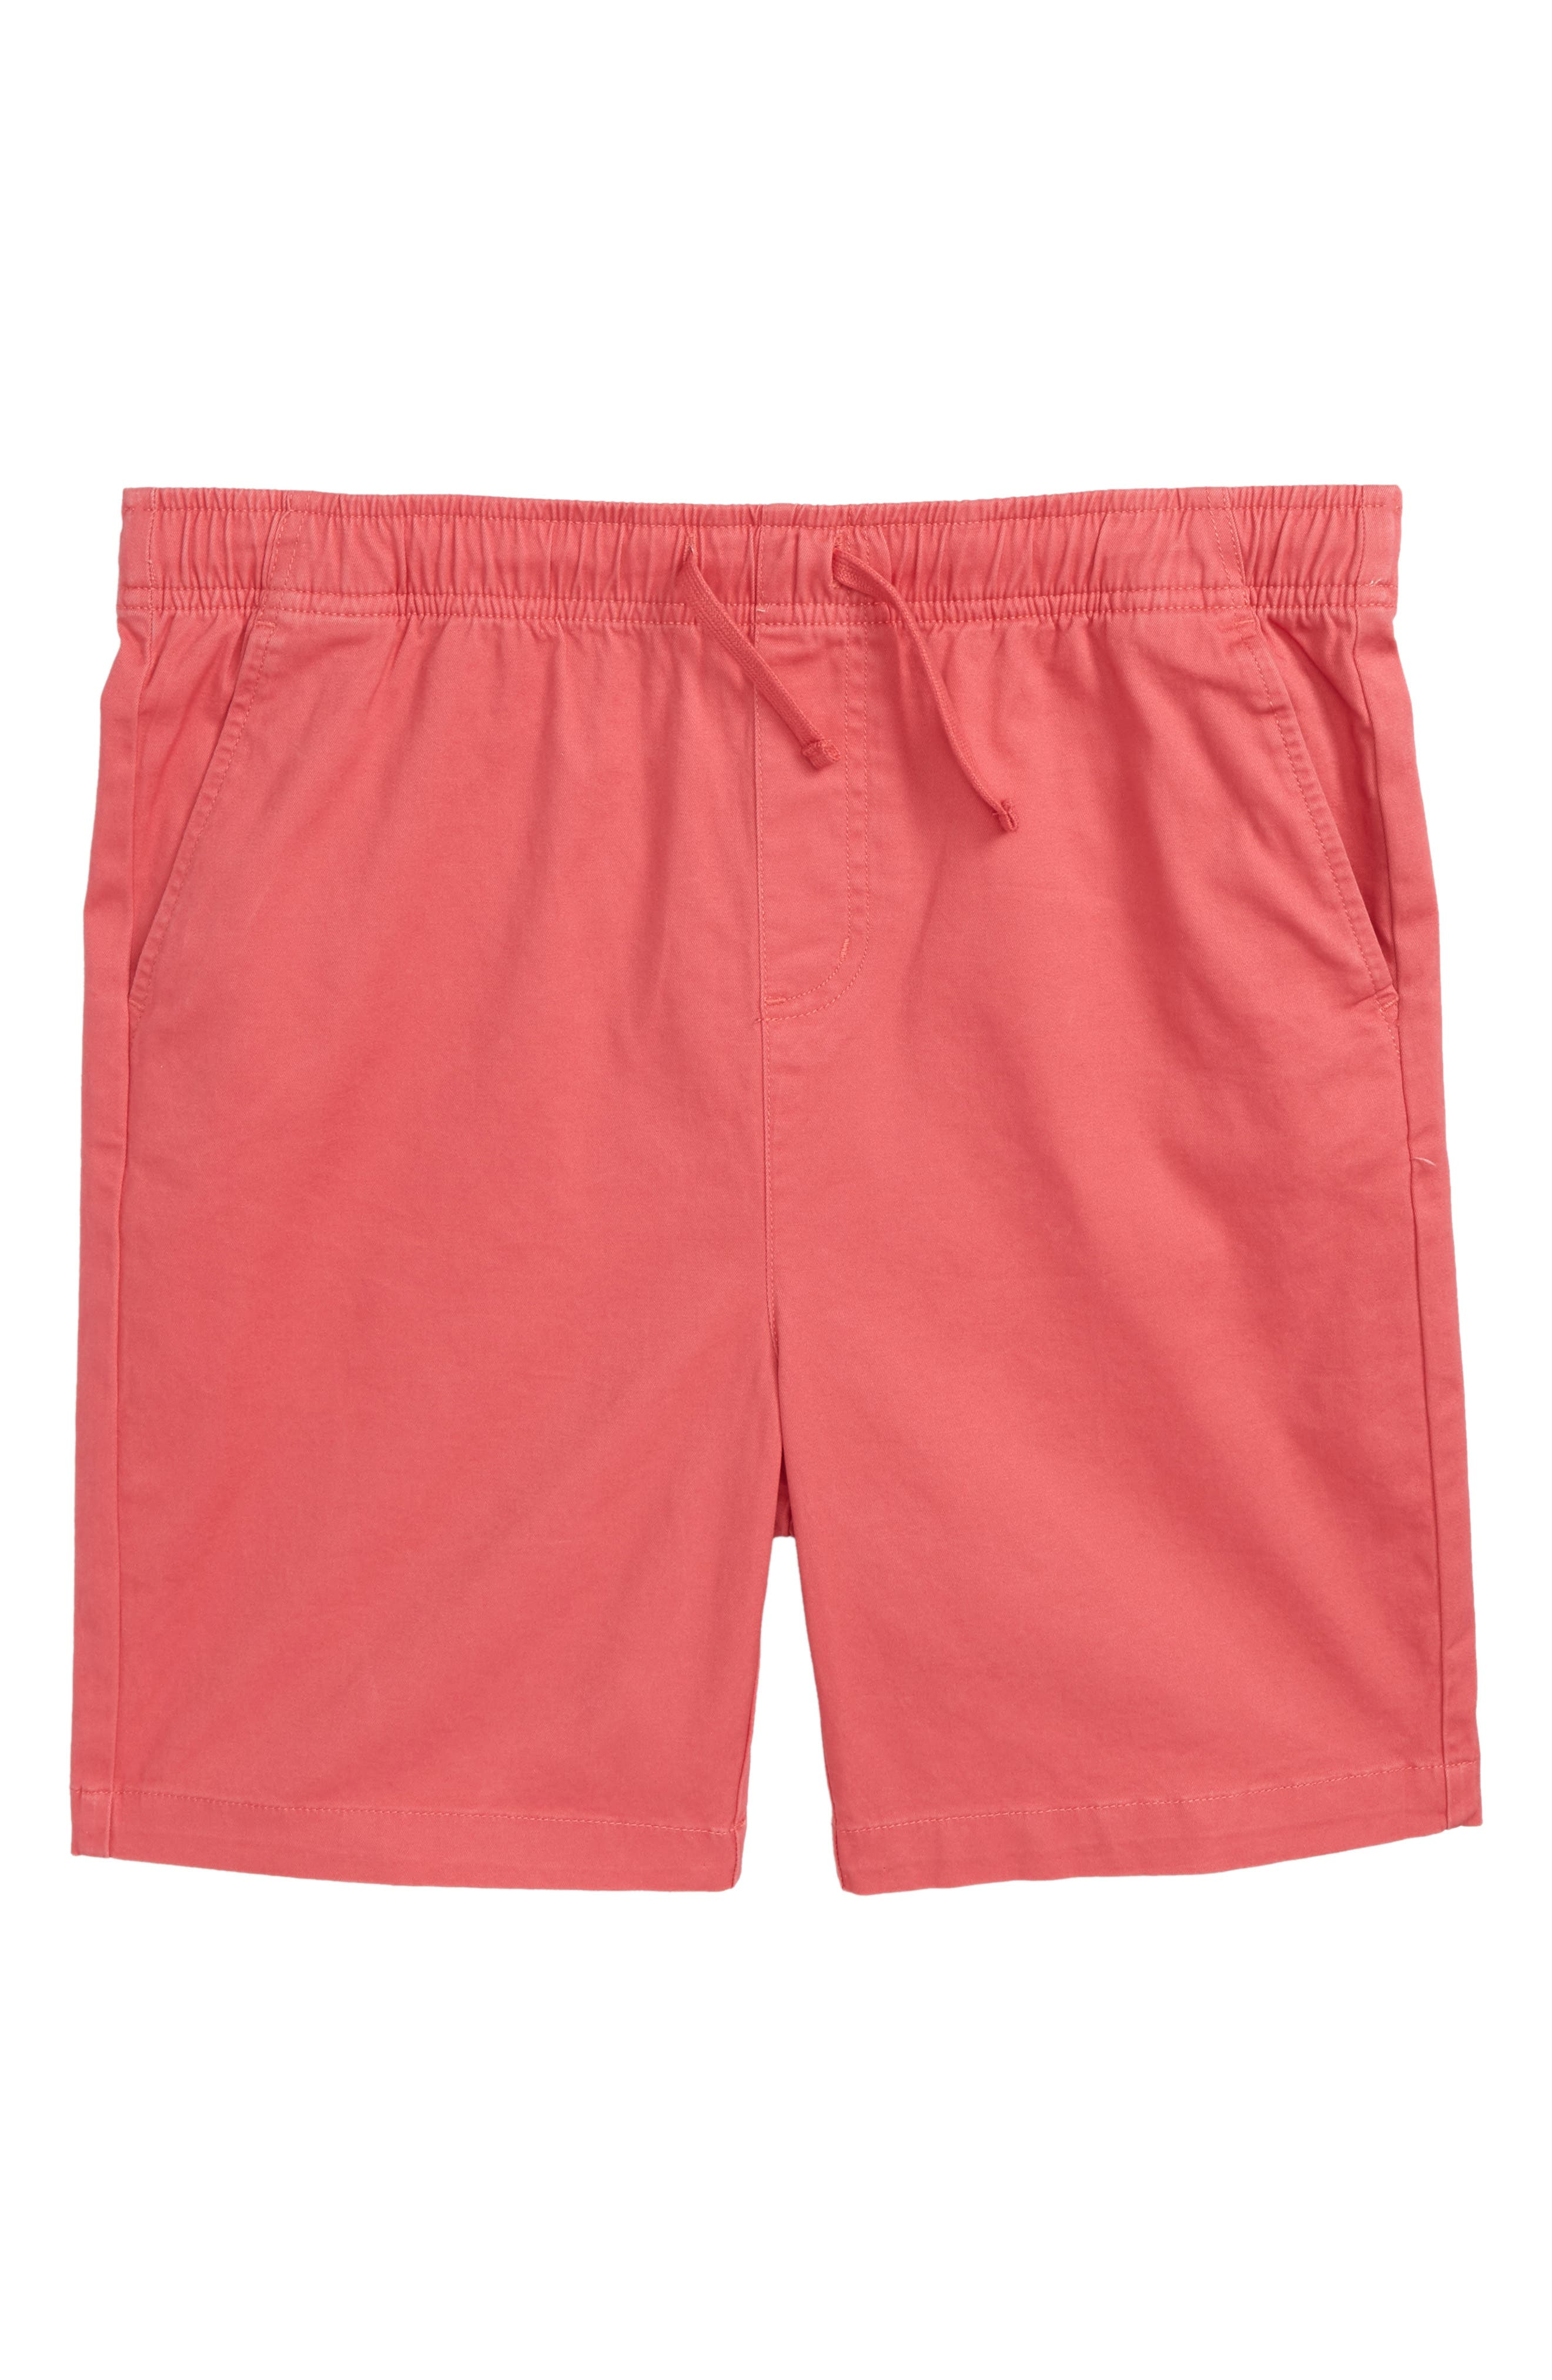 Stretch Jetty Shorts,                         Main,                         color, Jetty Red